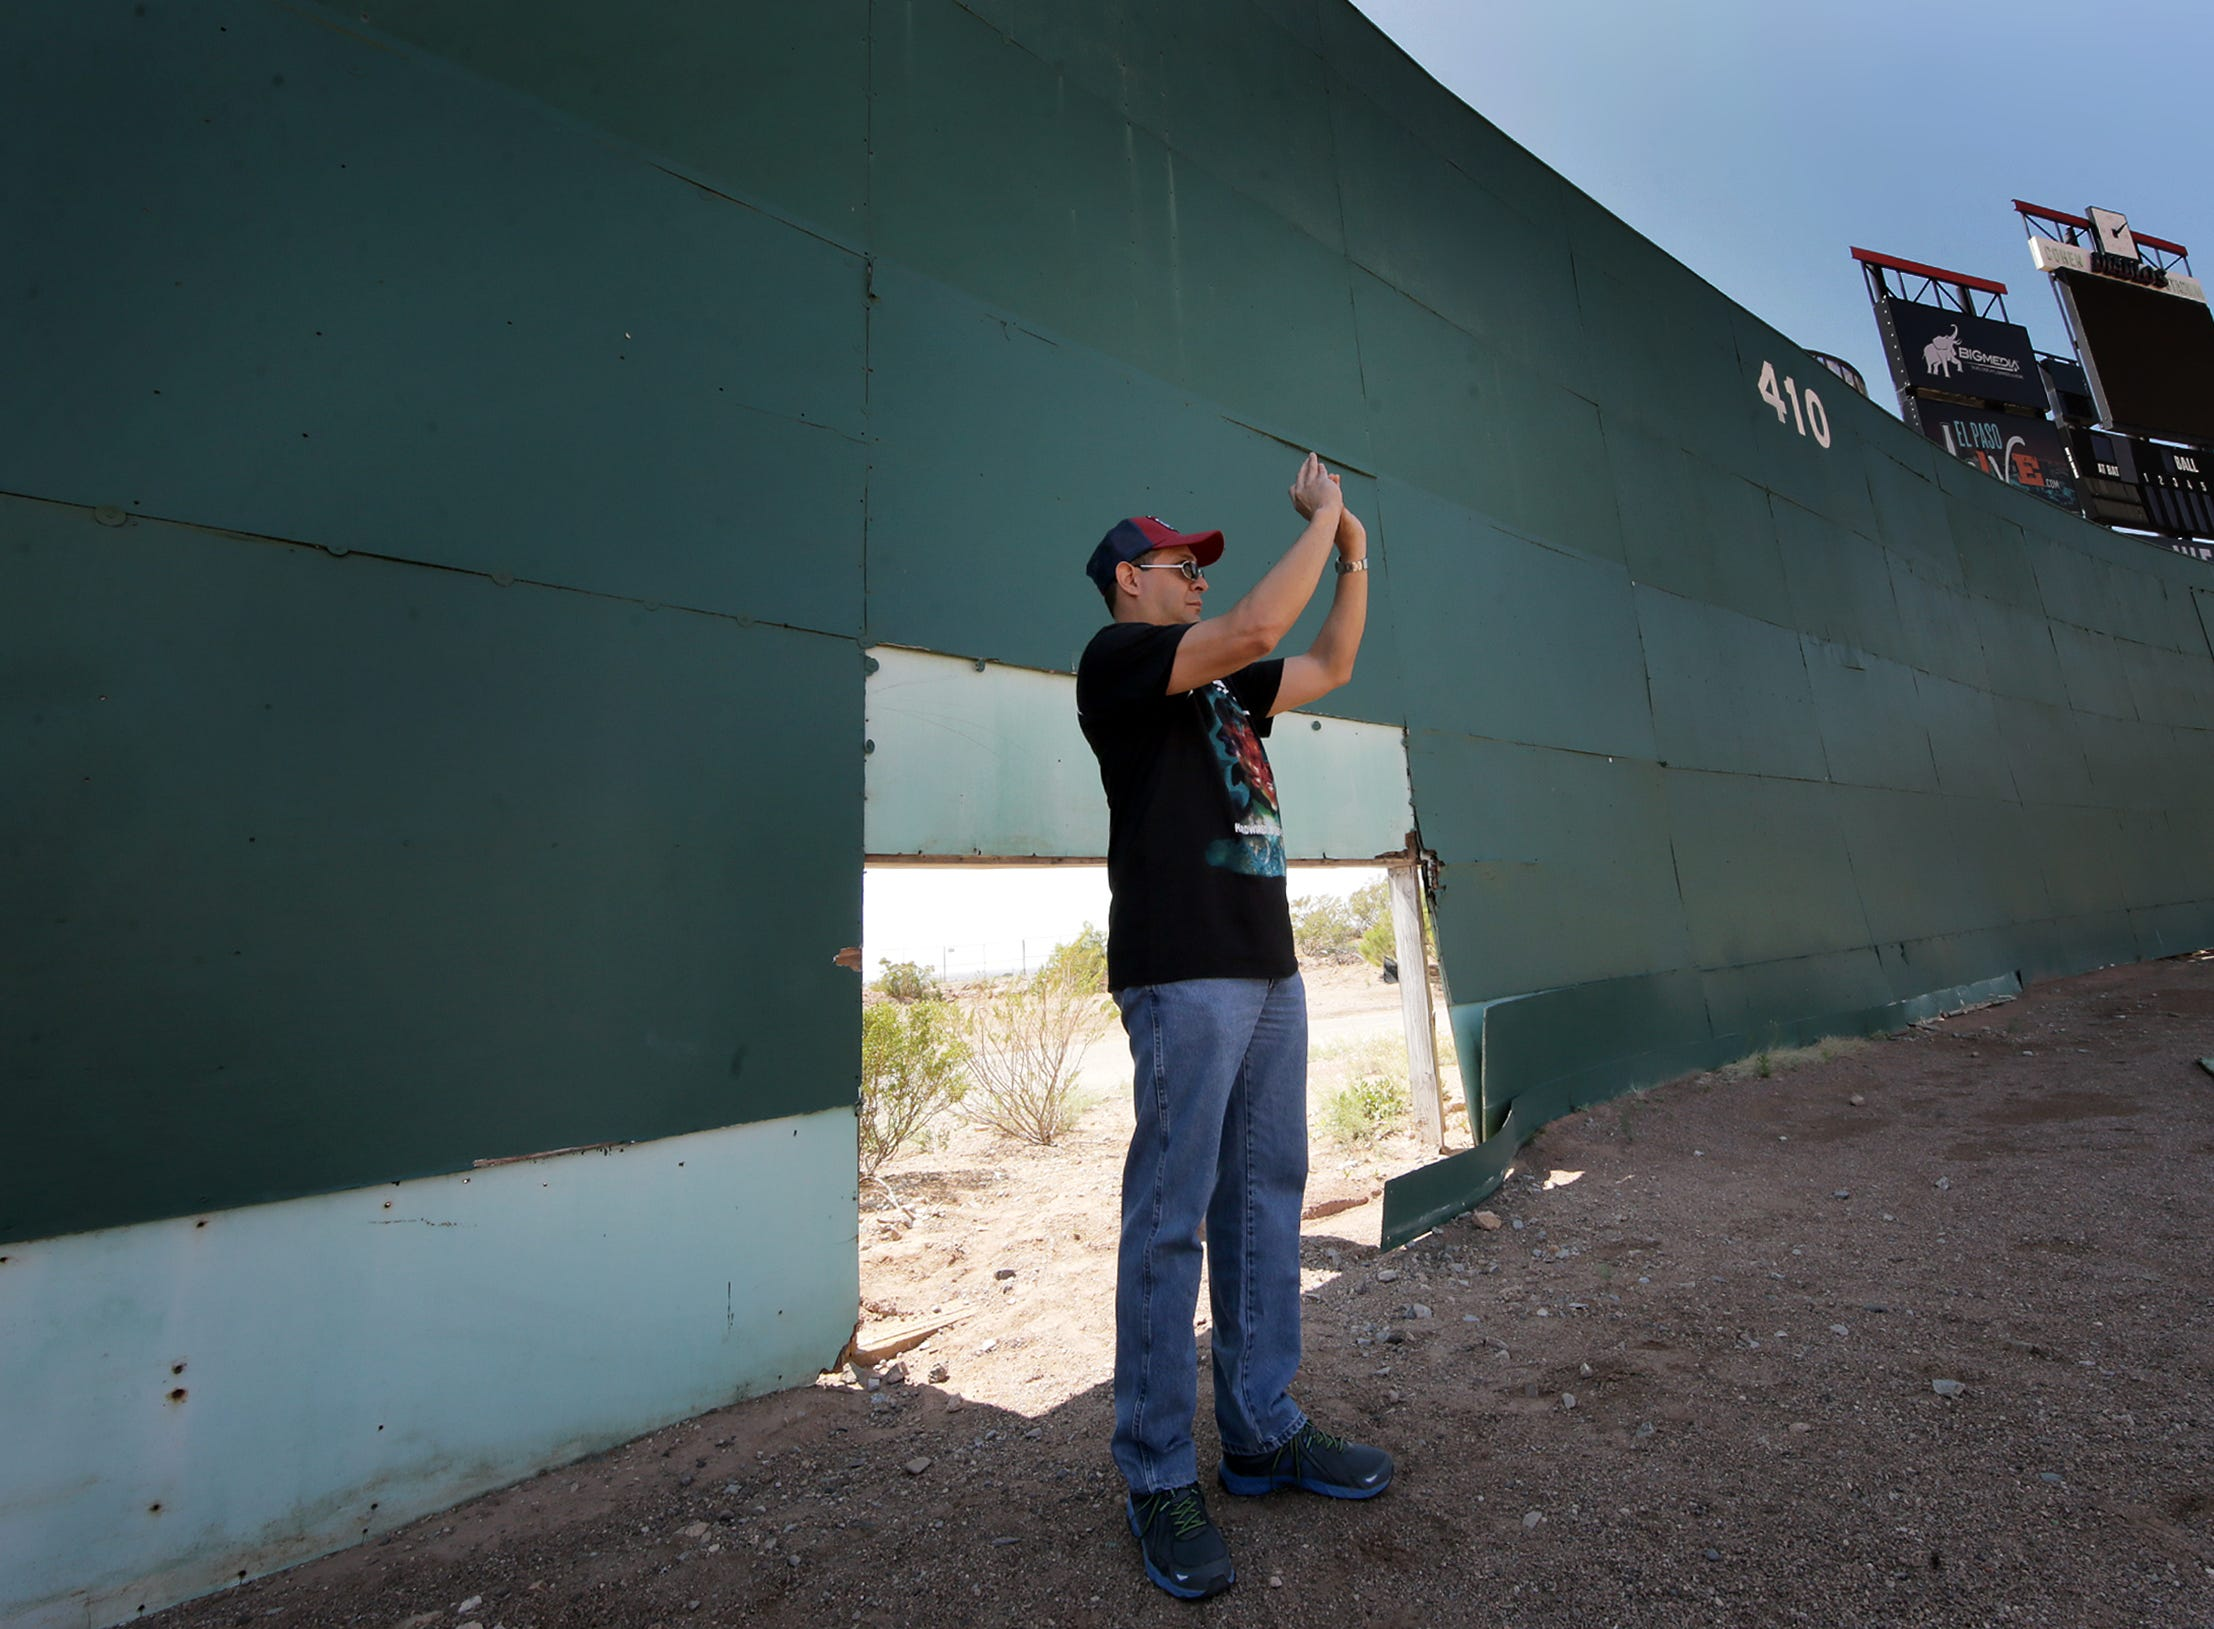 Eugene Lucero takes a few final photos of Cohen Stadium before it's demolished to make way for the Cohen Entertainment District. The site will be converted into a multiuse facility with a large water park, restaurants and an urban plaza. The stadium was closed to the public during Selfie Day at Cohen Stadium on Saturday, May 11, 2019, but several El Pasoans popped through a hole in center field for one last look at the deteriorating stadium.